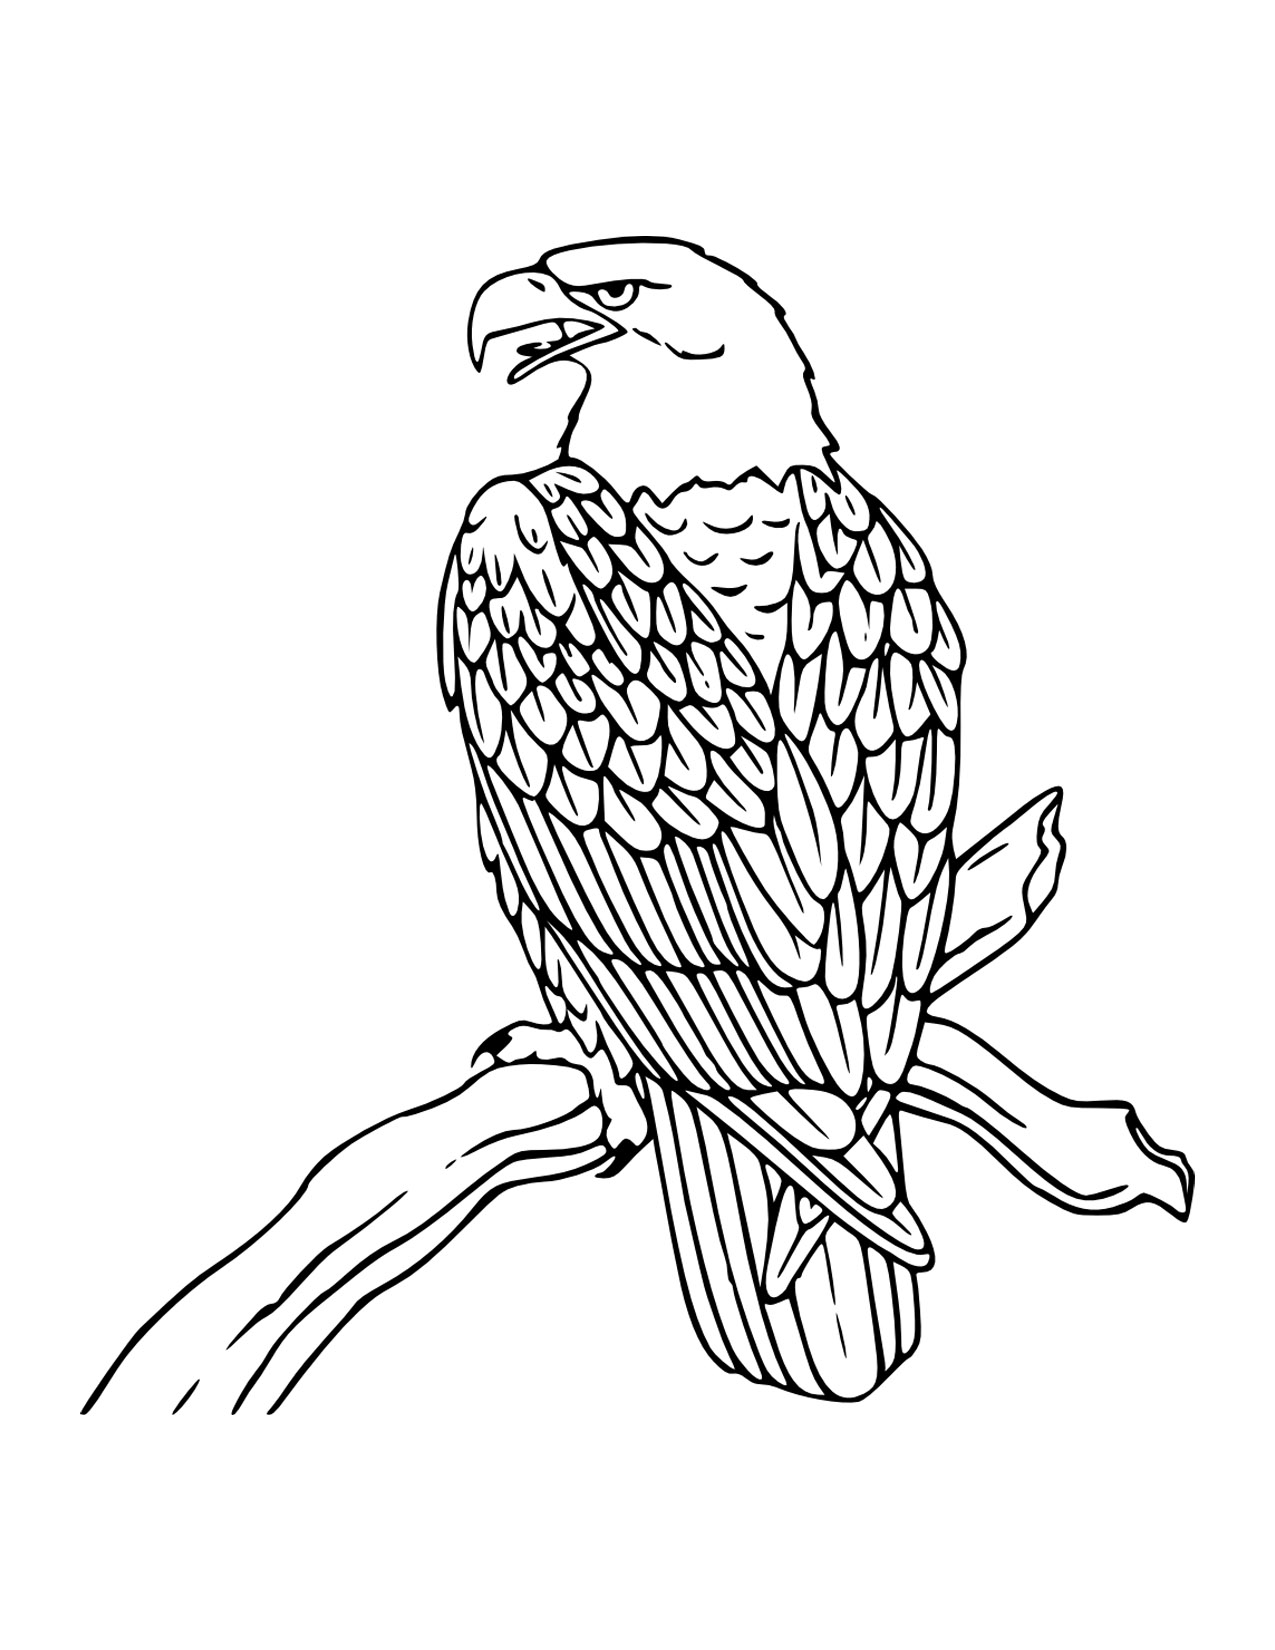 1275x1650 Free Printable Bald Eagle Coloring Pages For Kids Eagle Coloring